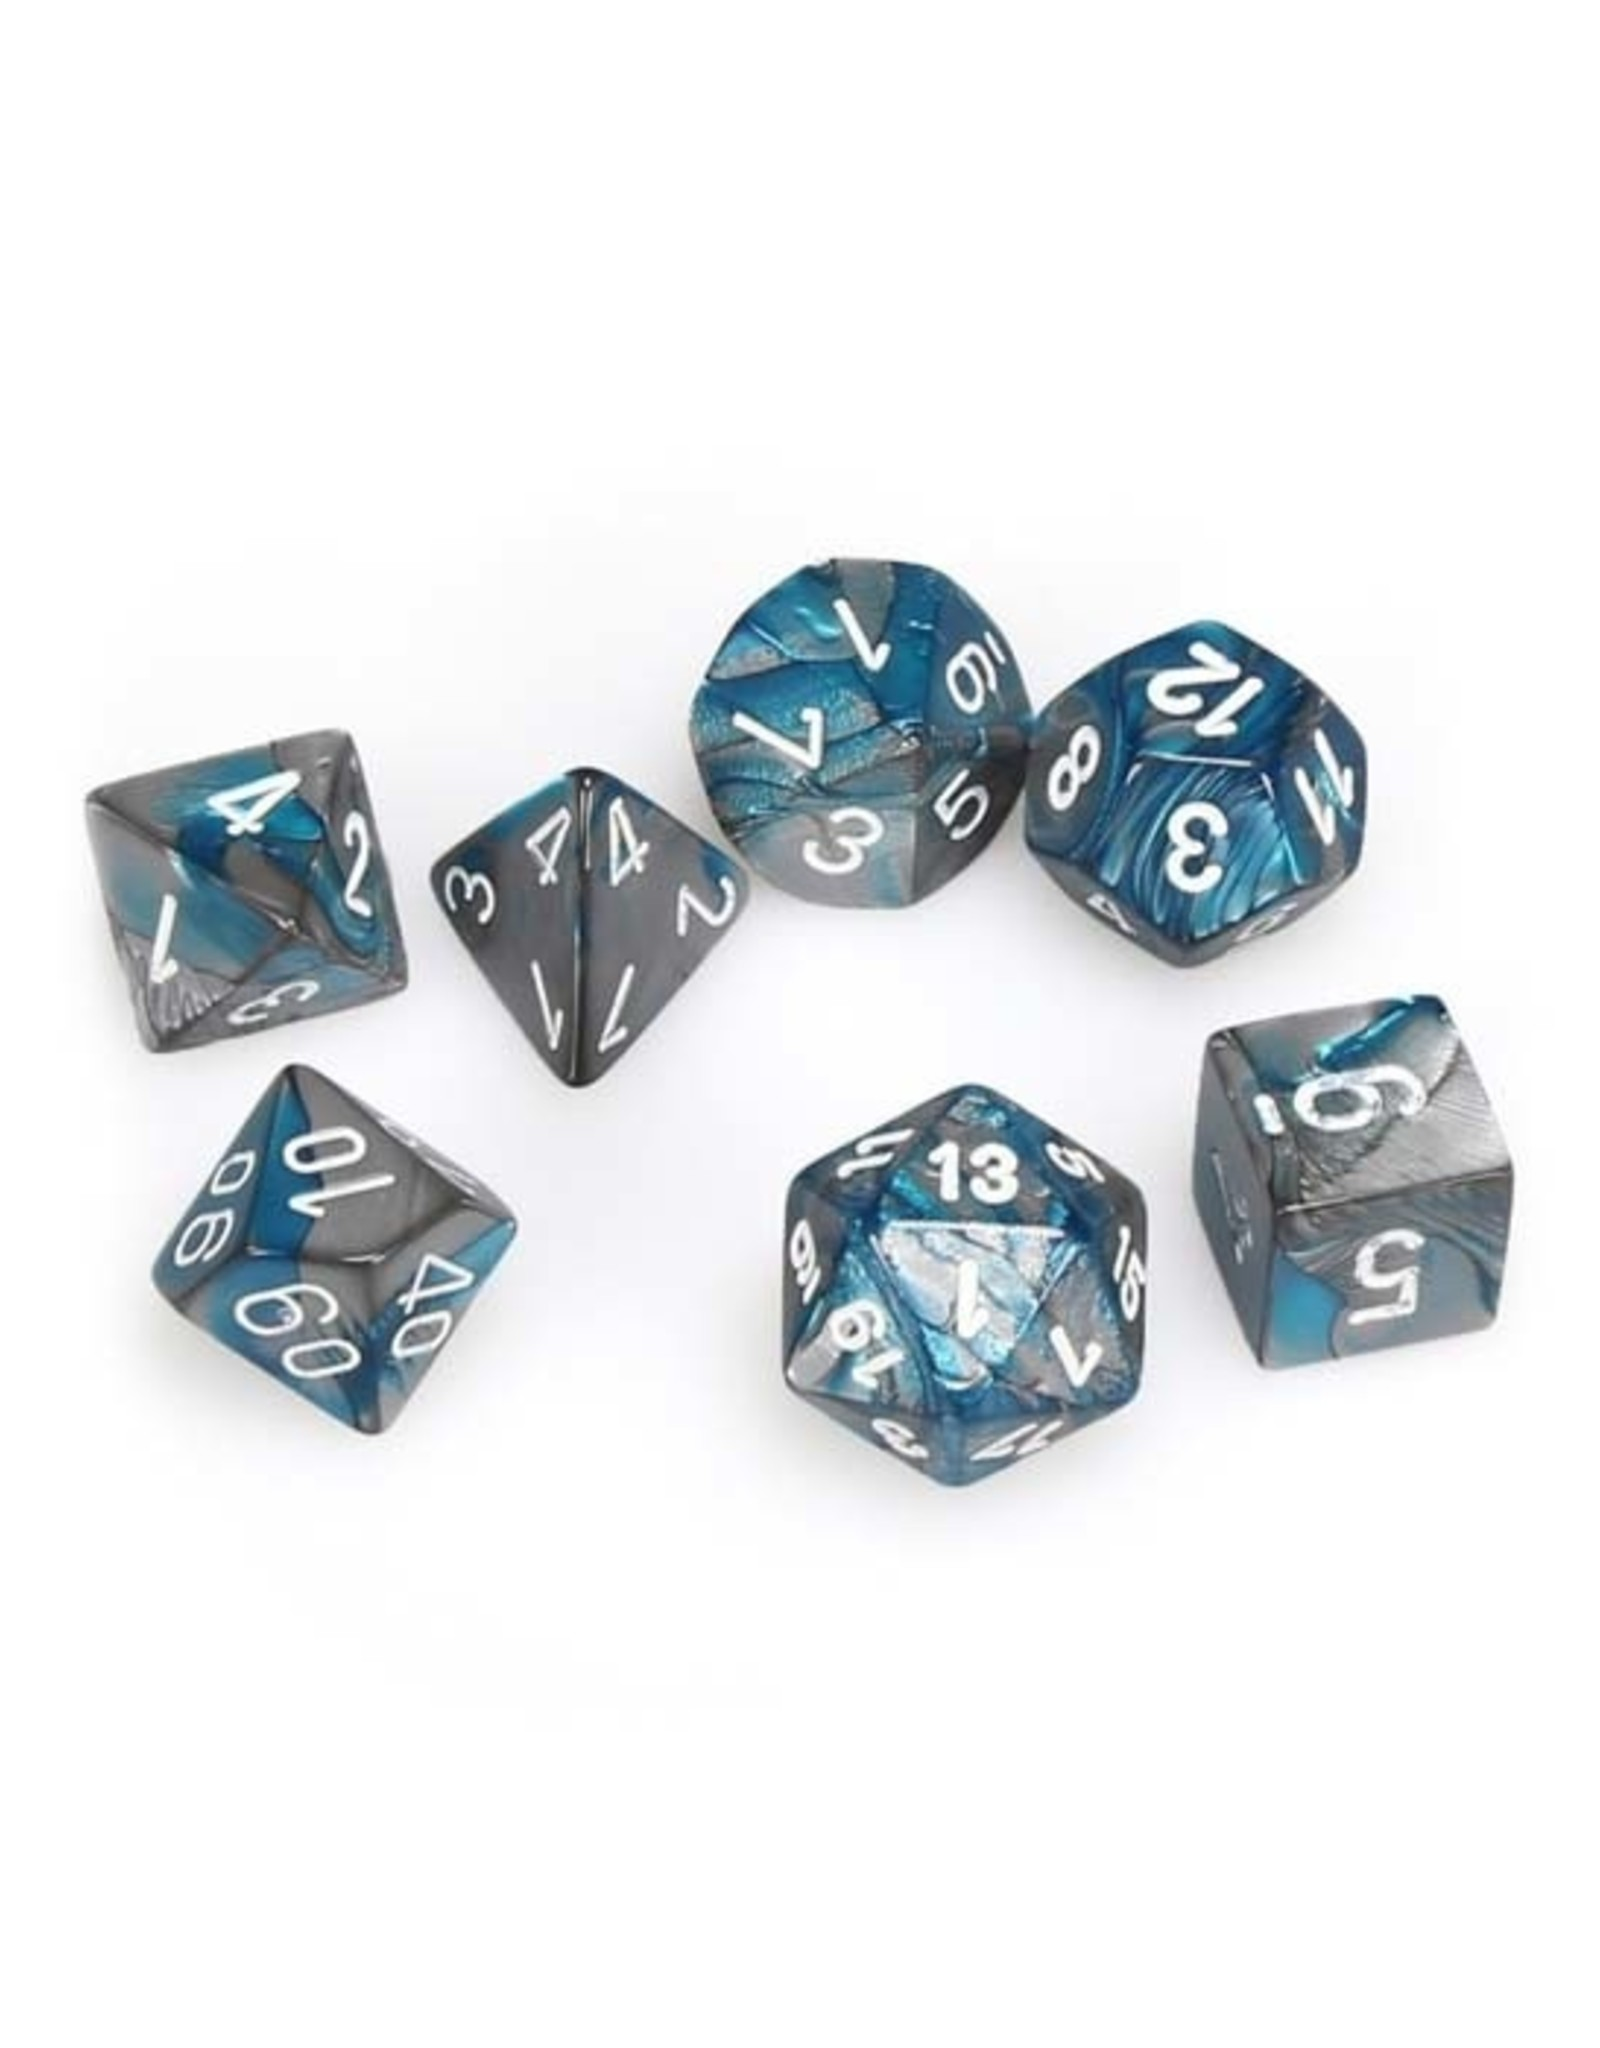 Chessex Chessex: Poly 7 Set - Gemini - Steel-Teal w/ White